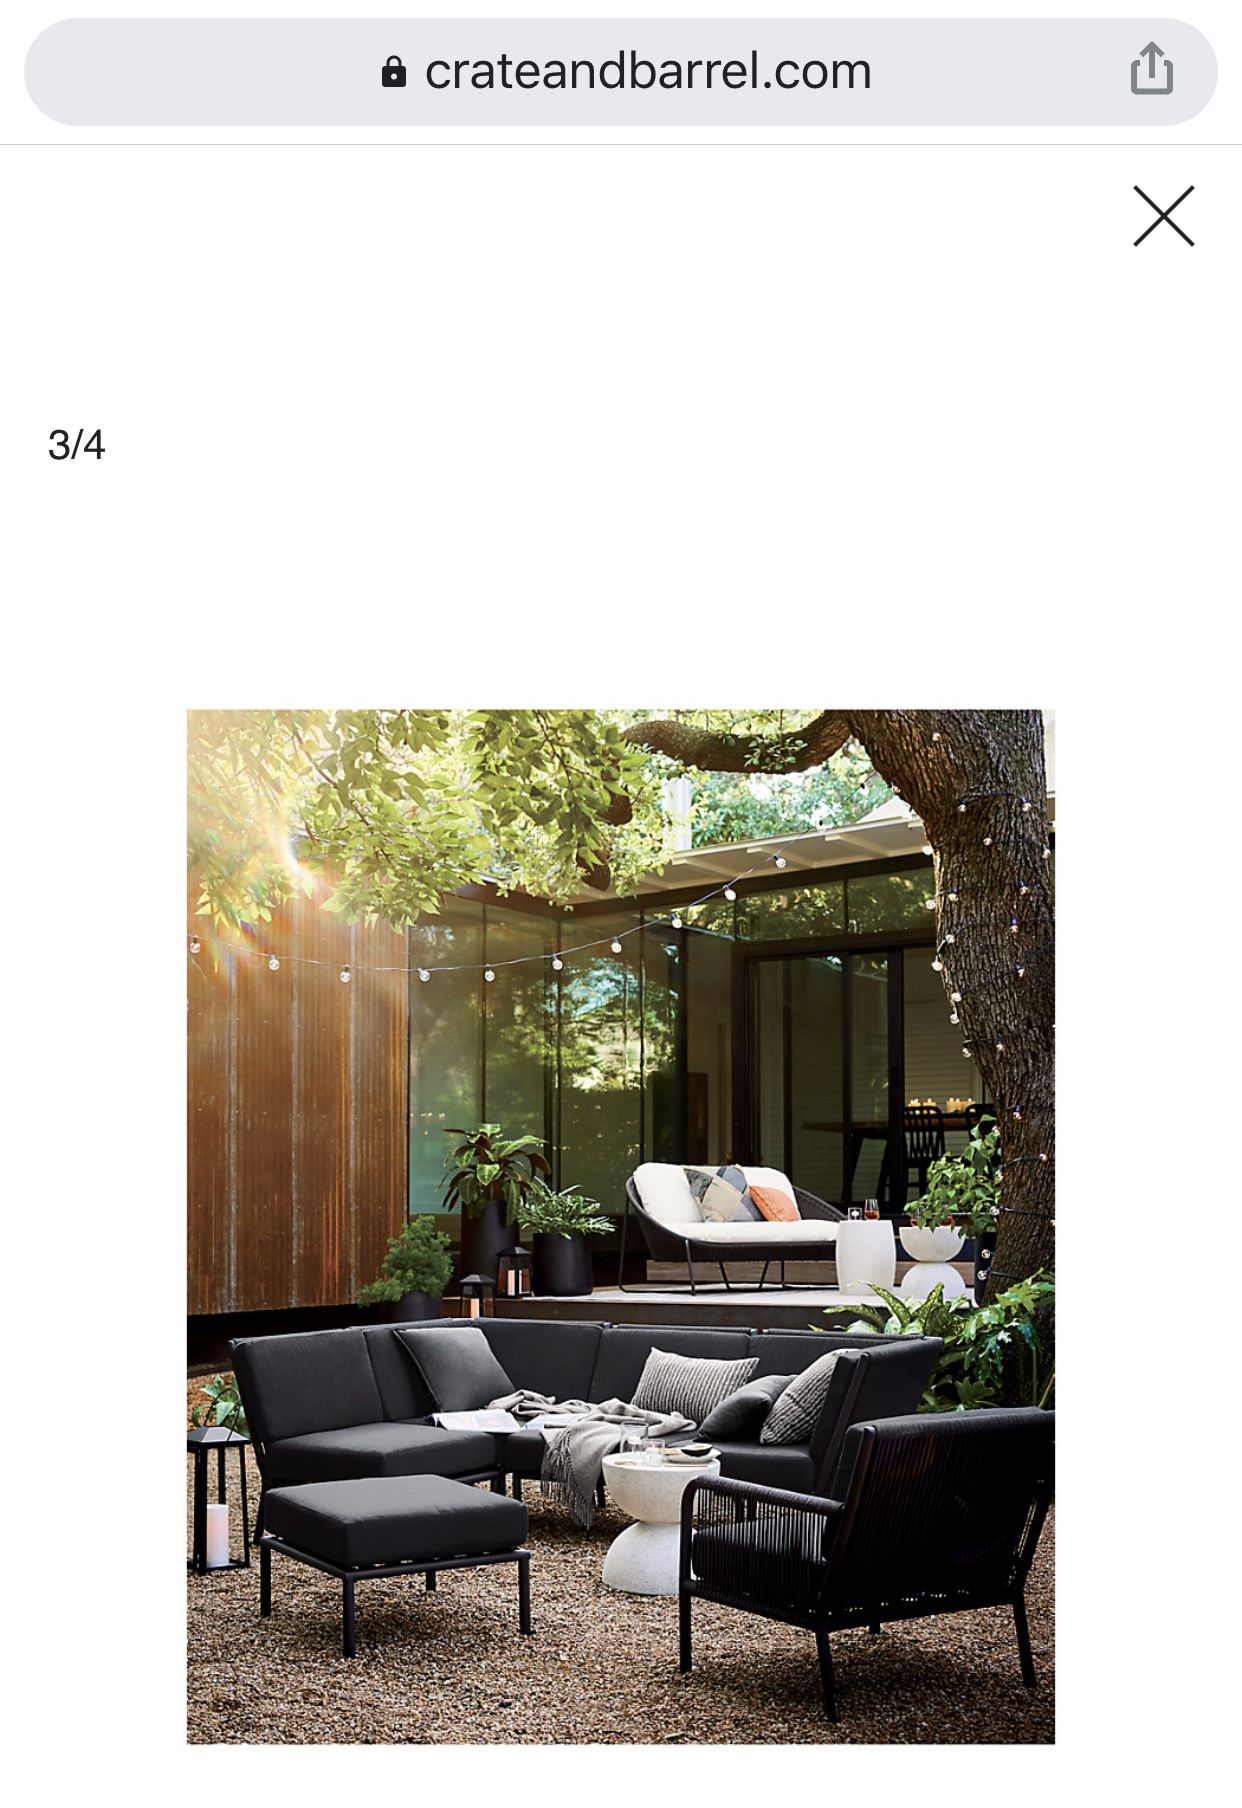 Pin By Sixthsensestyling On Minimal Merced In 2020 Outdoor Furniture Sets Outdoor Furniture Outdoor Decor